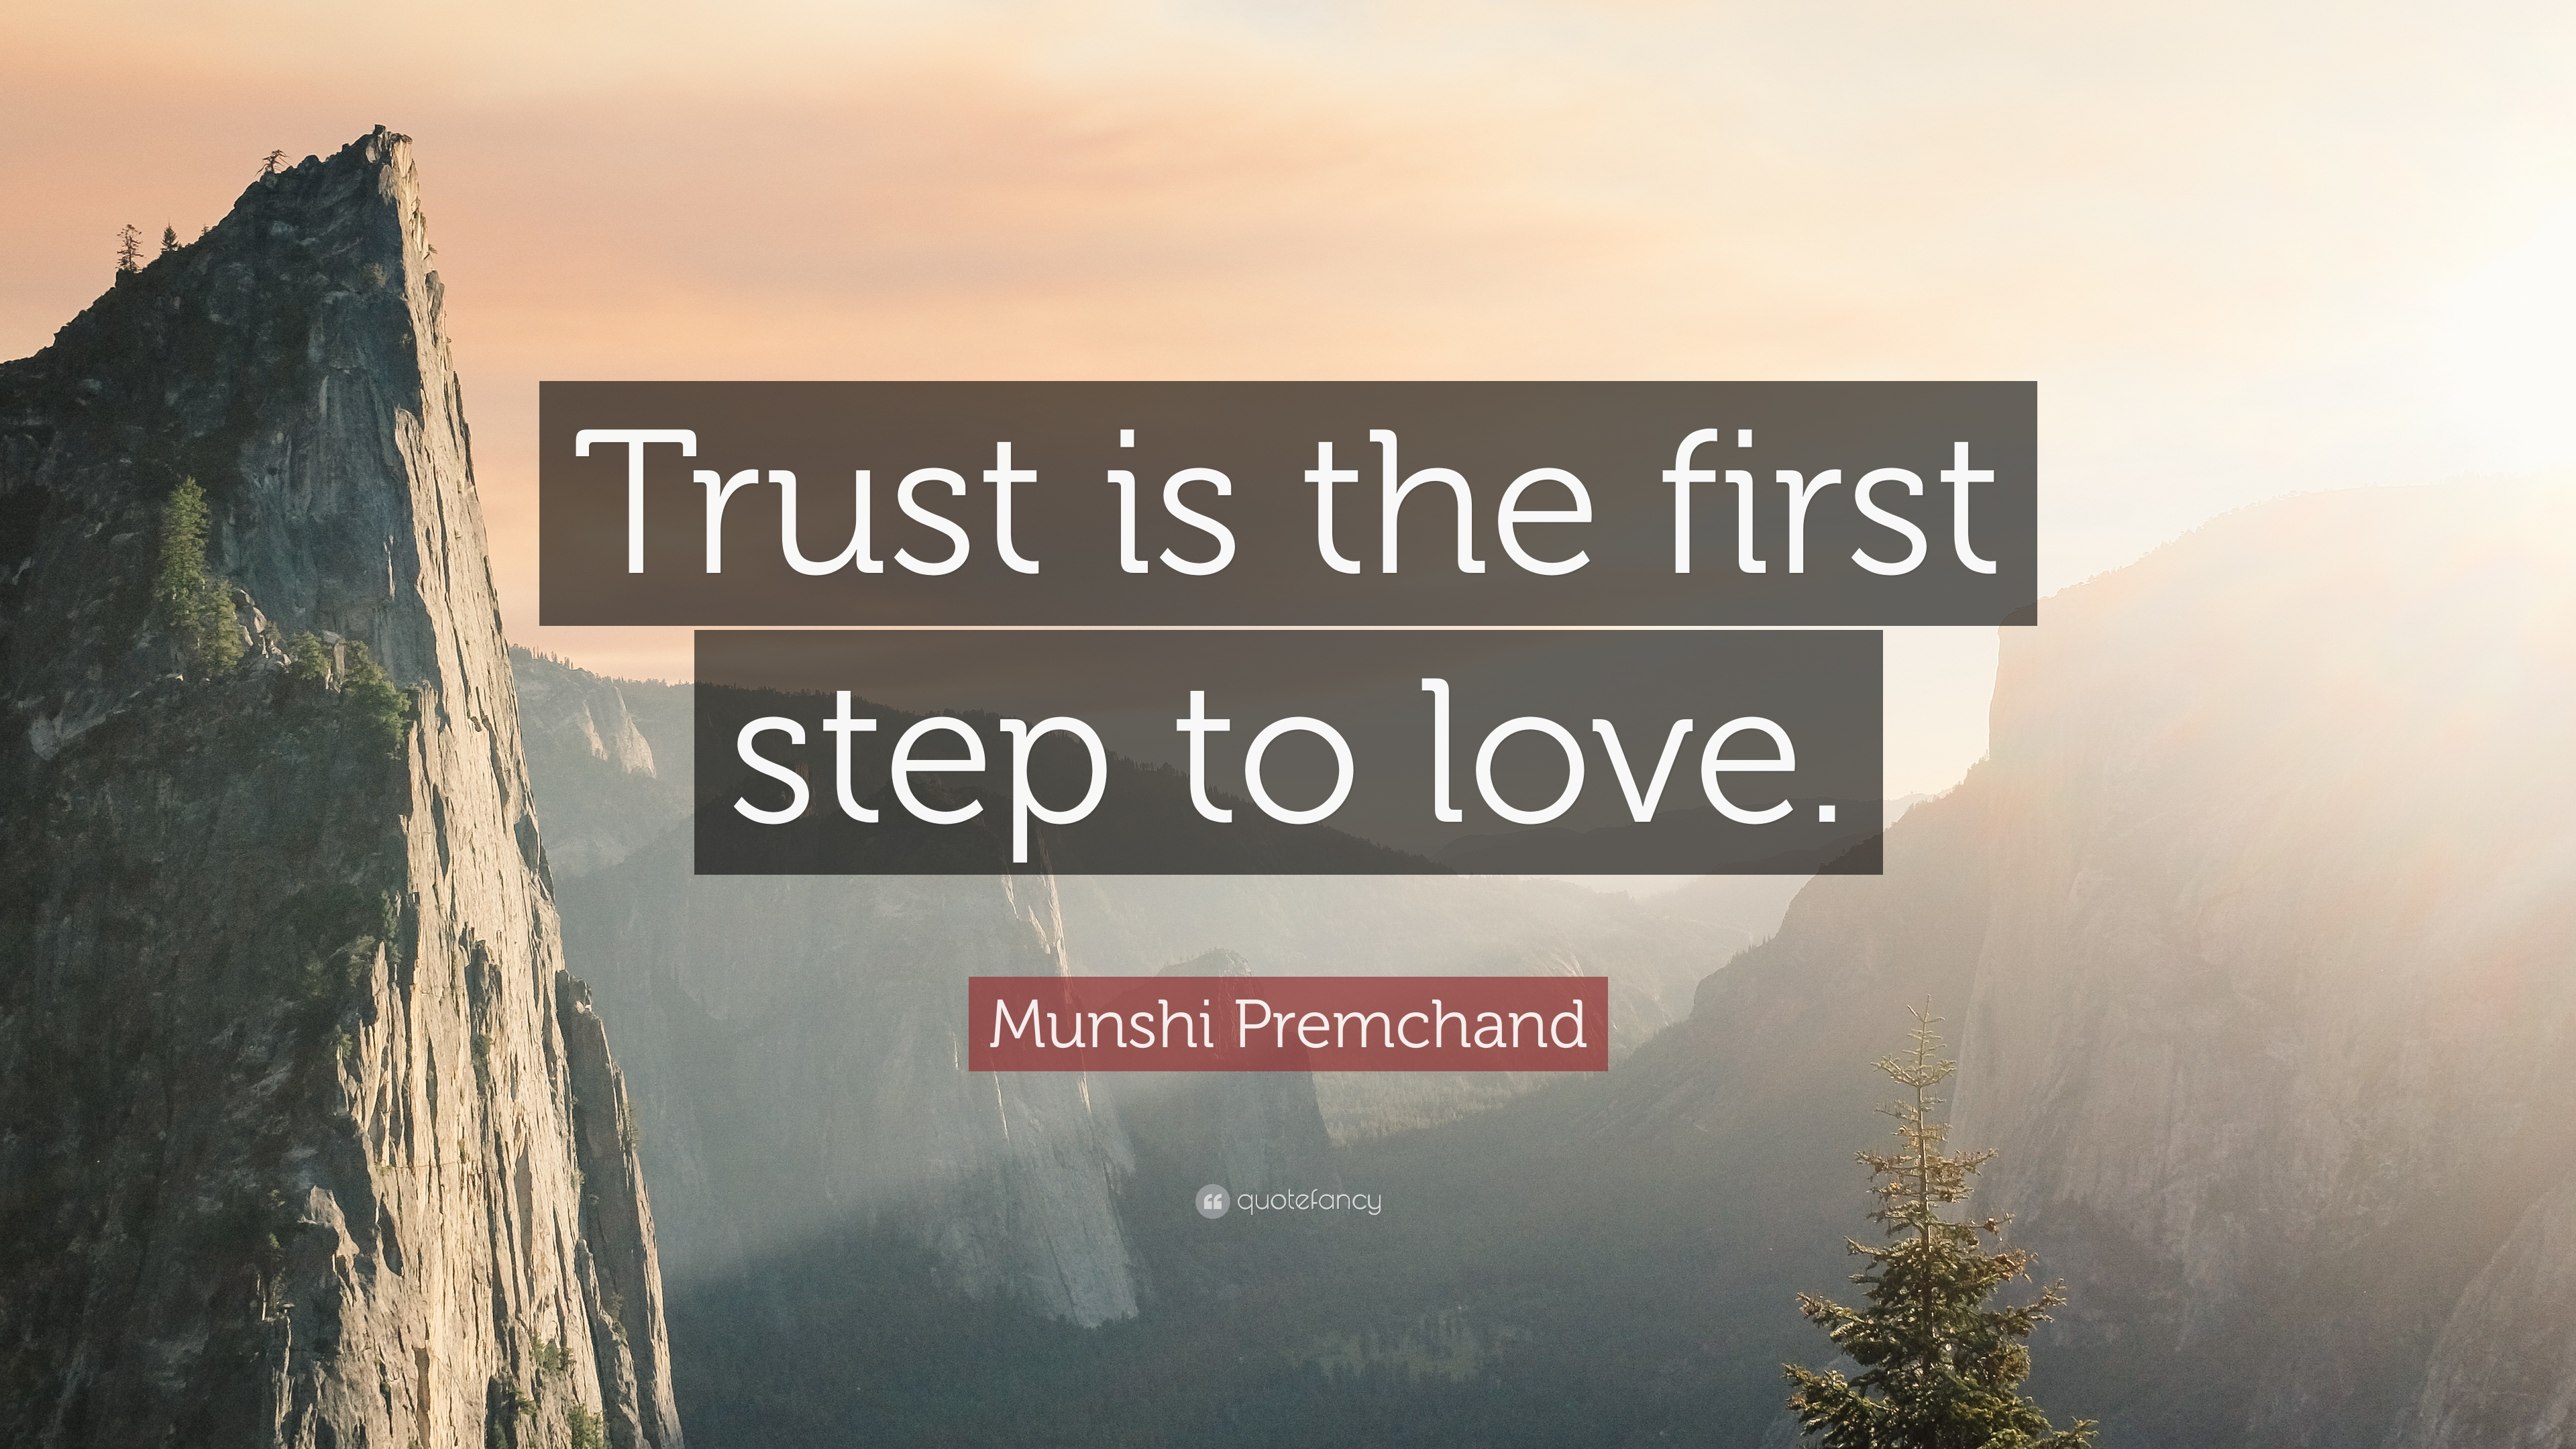 Quotes About Trust: U201cTrust Is The First Step To Love.u201d U2014 Munshi